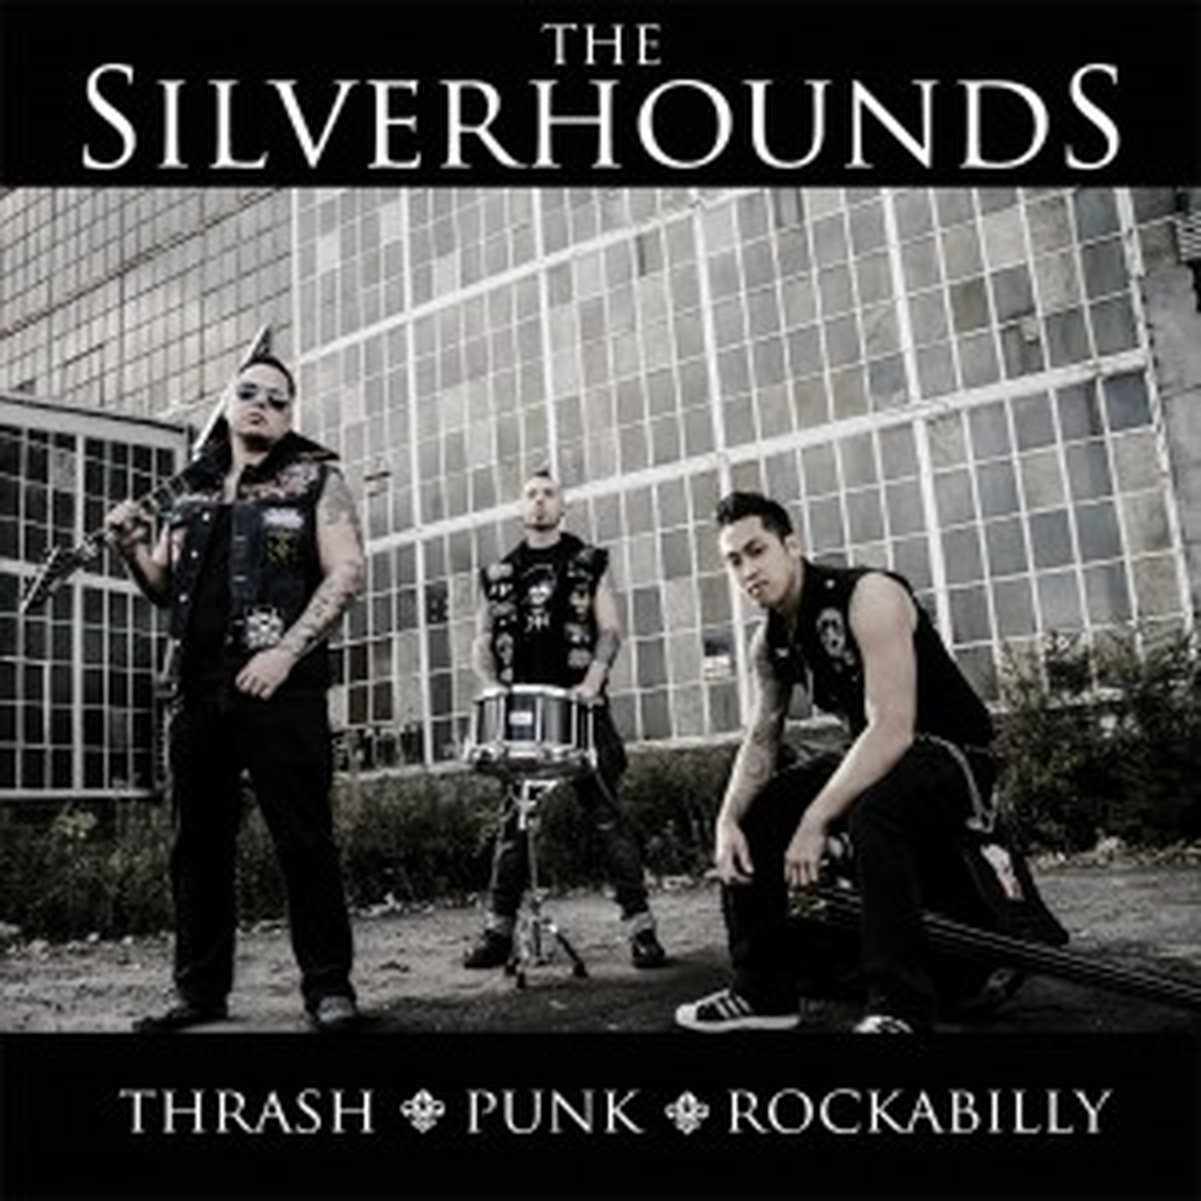 The Silverhounds wiki, The Silverhounds review, The Silverhounds history, The Silverhounds news